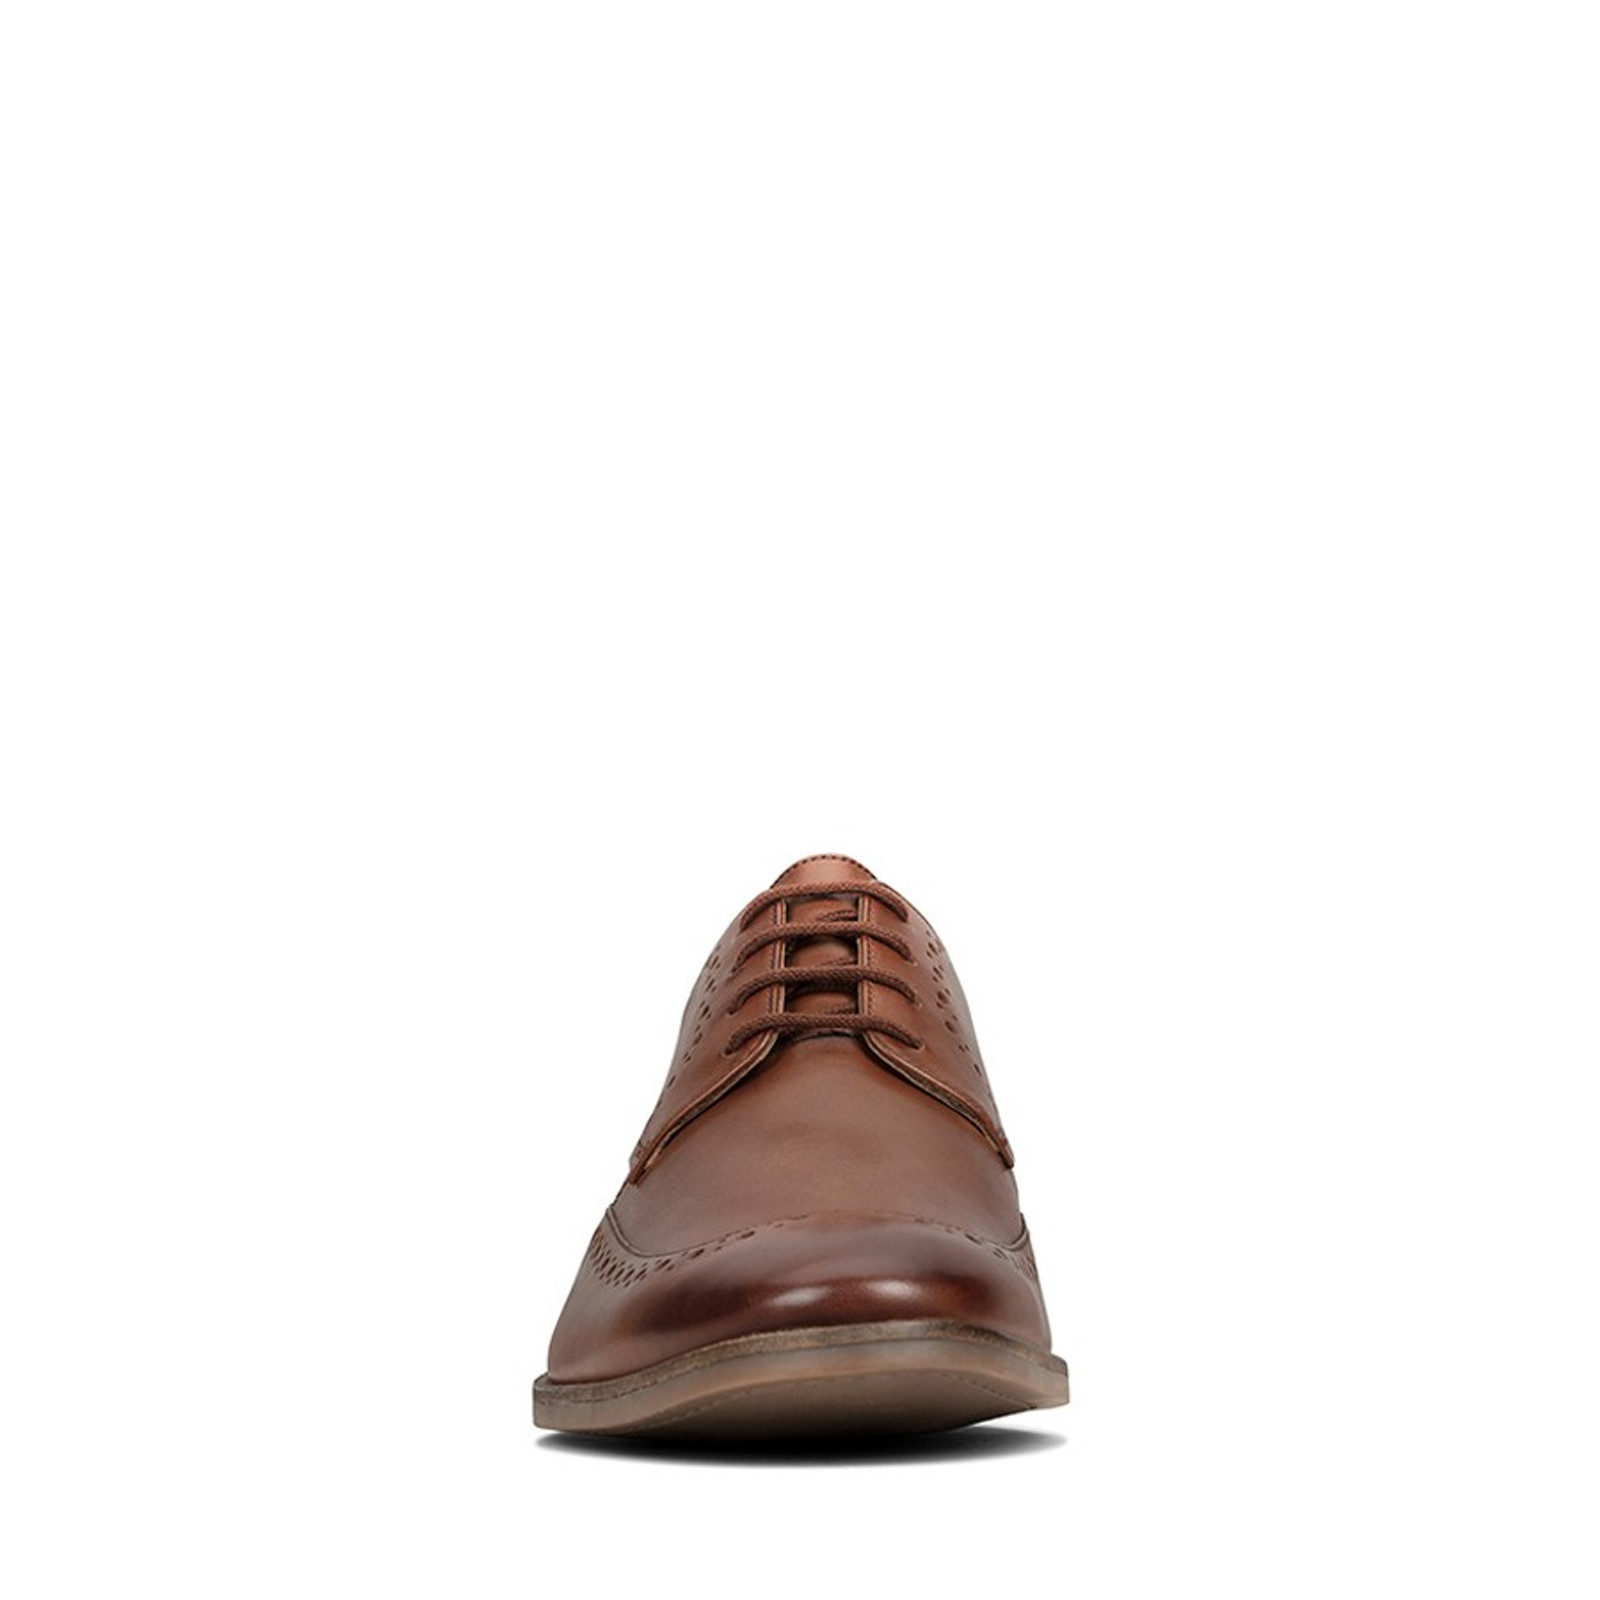 Clarks Mens STANFORD LIMIT Tan Leather